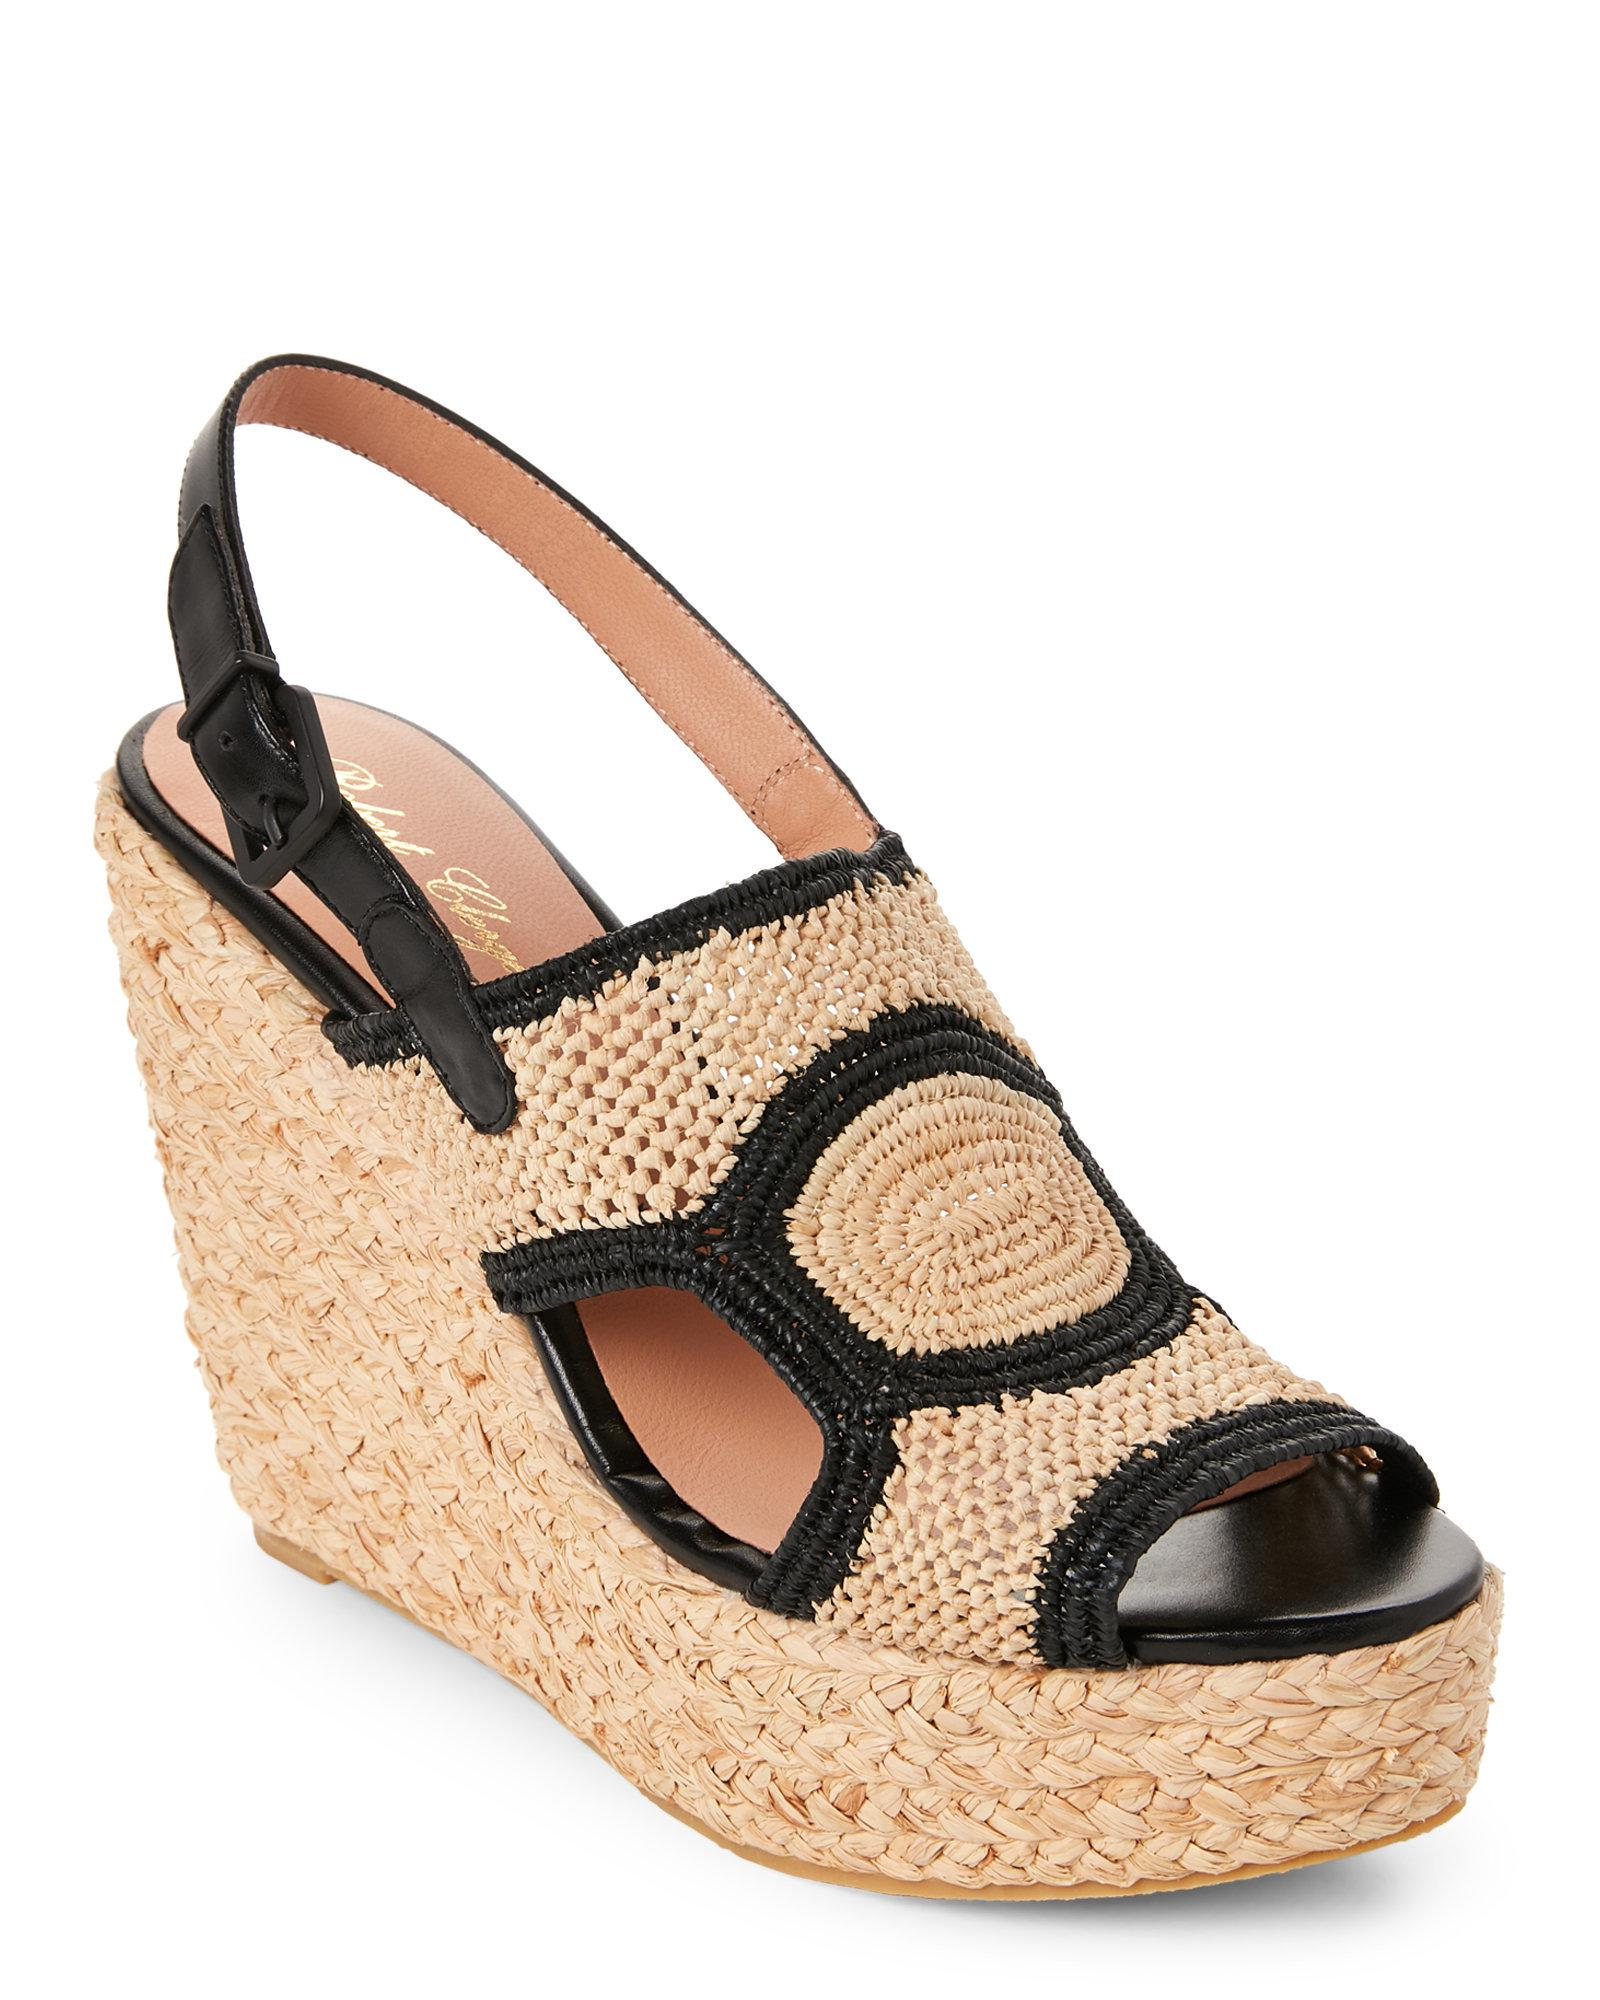 56dbbb34d2 Robert Clergerie Natural & Black Drastic Raffia Wedge Sandals in ...